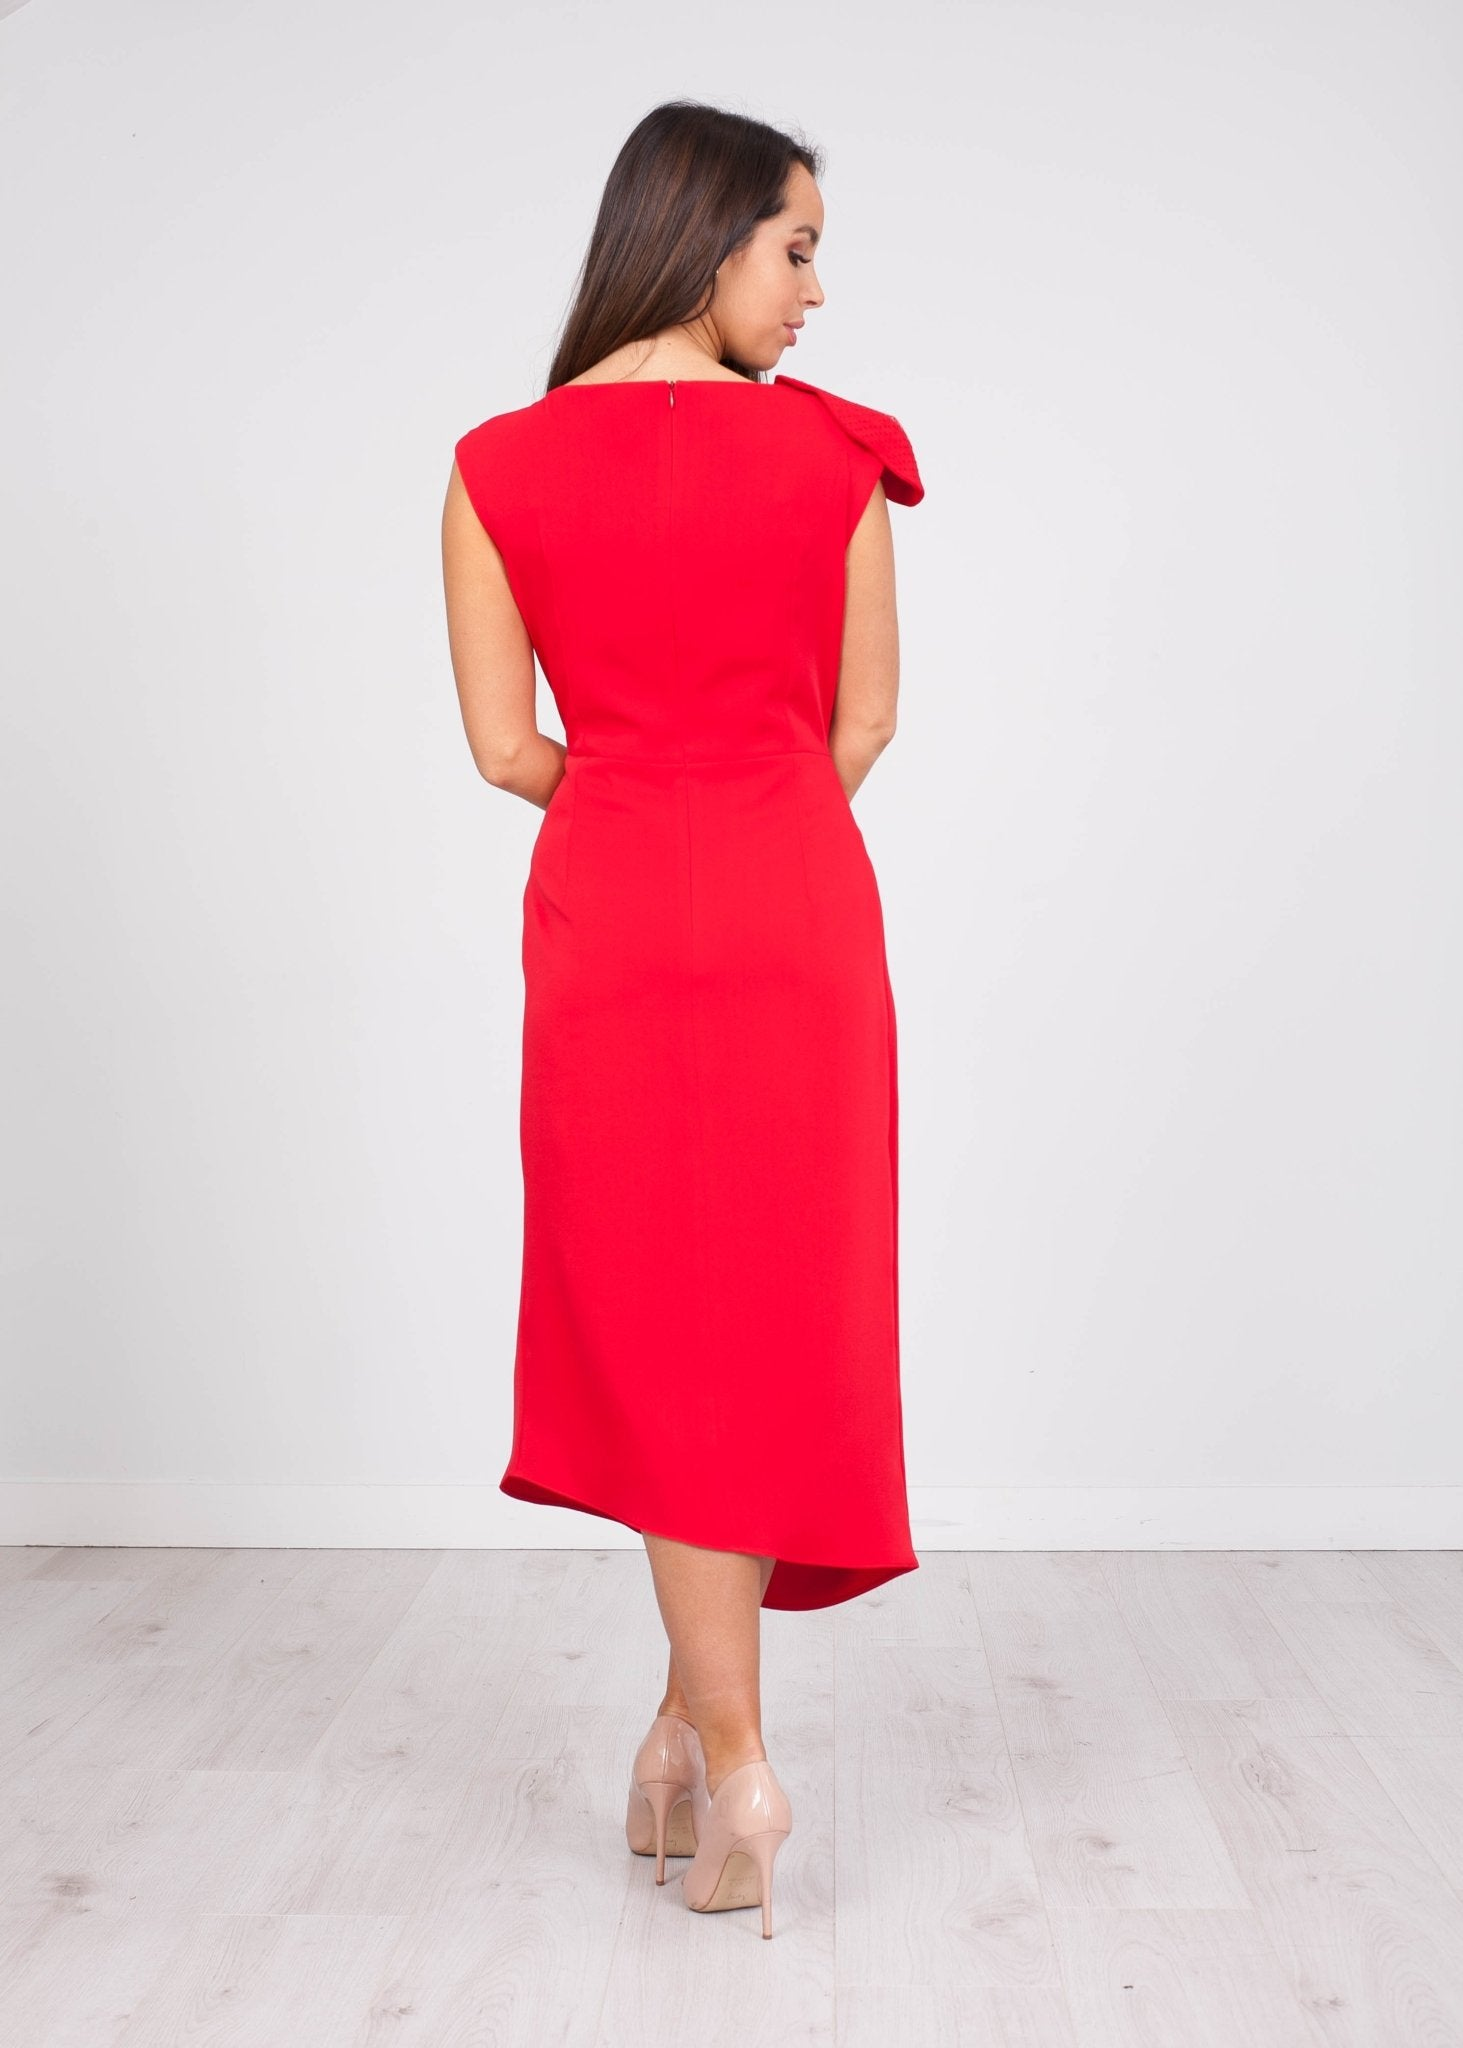 Carla Paloma Red Dress - The Walk in Wardrobe